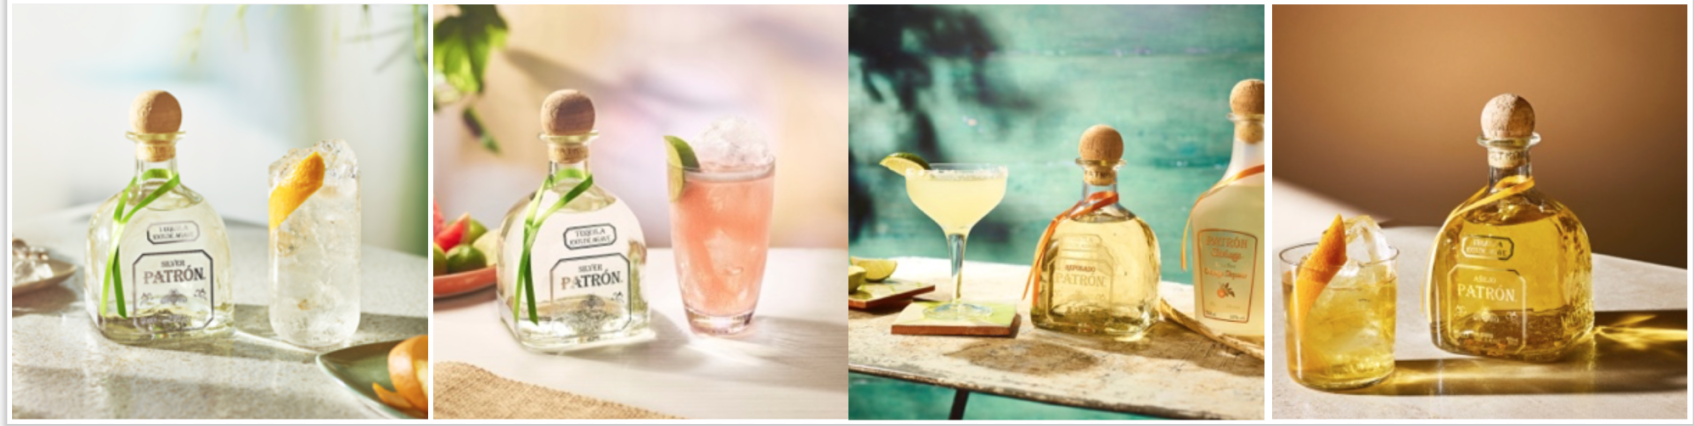 national-tequila-day-sustainable-patron-cocktails